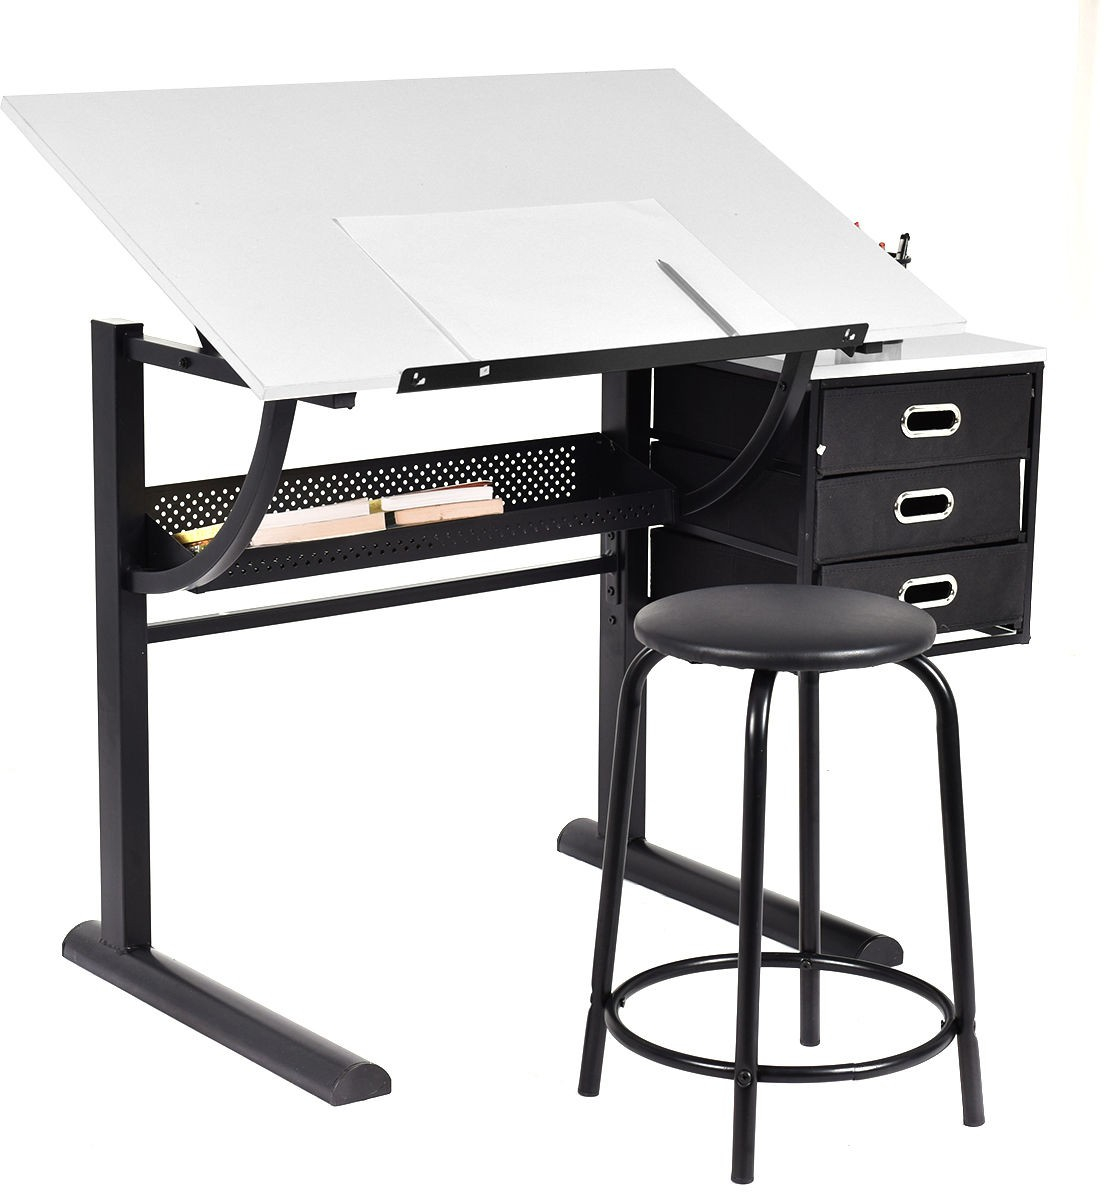 Astounding Details About Adjustable Drafting Table Desk Art Artist Craft Hobby Drawing Desk W Stool Download Free Architecture Designs Lukepmadebymaigaardcom